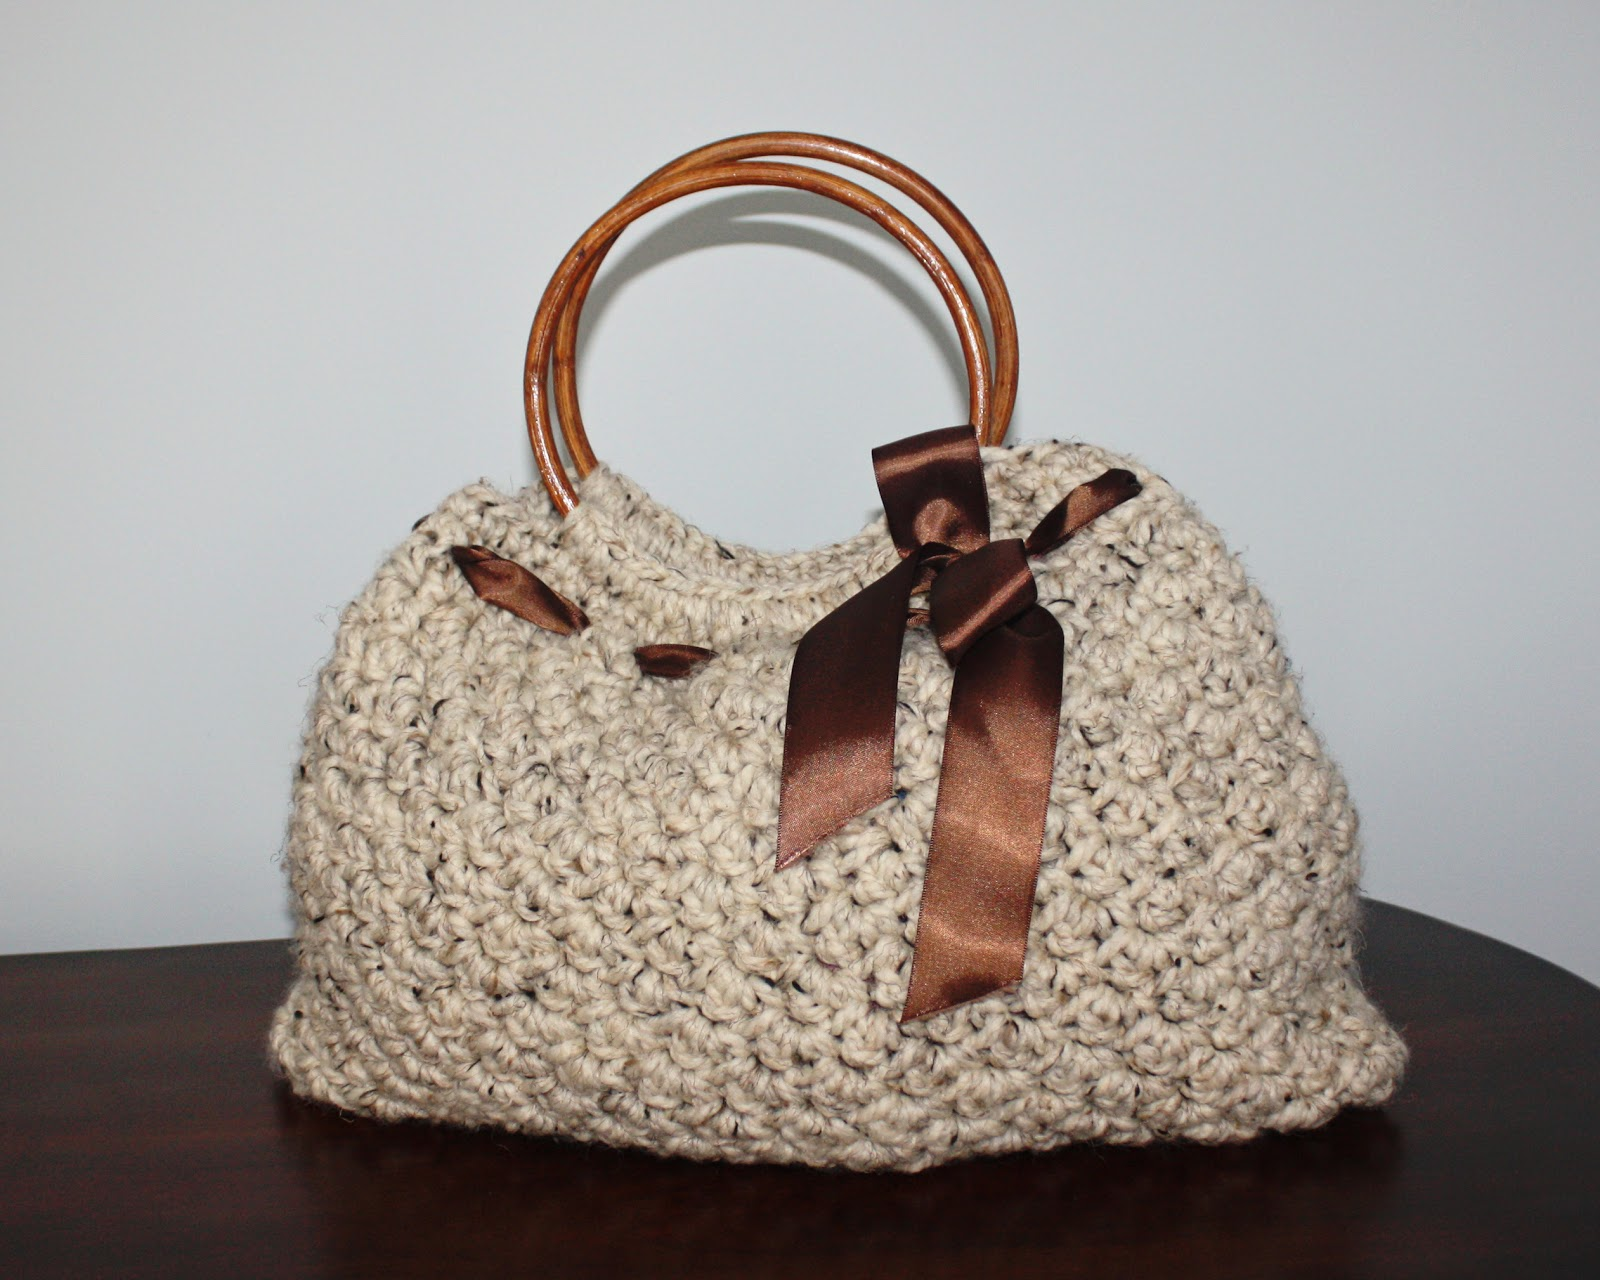 Crochet Patterns Purses : Pretty Darn Adorable Crochet: Crochet Handbag/Purse